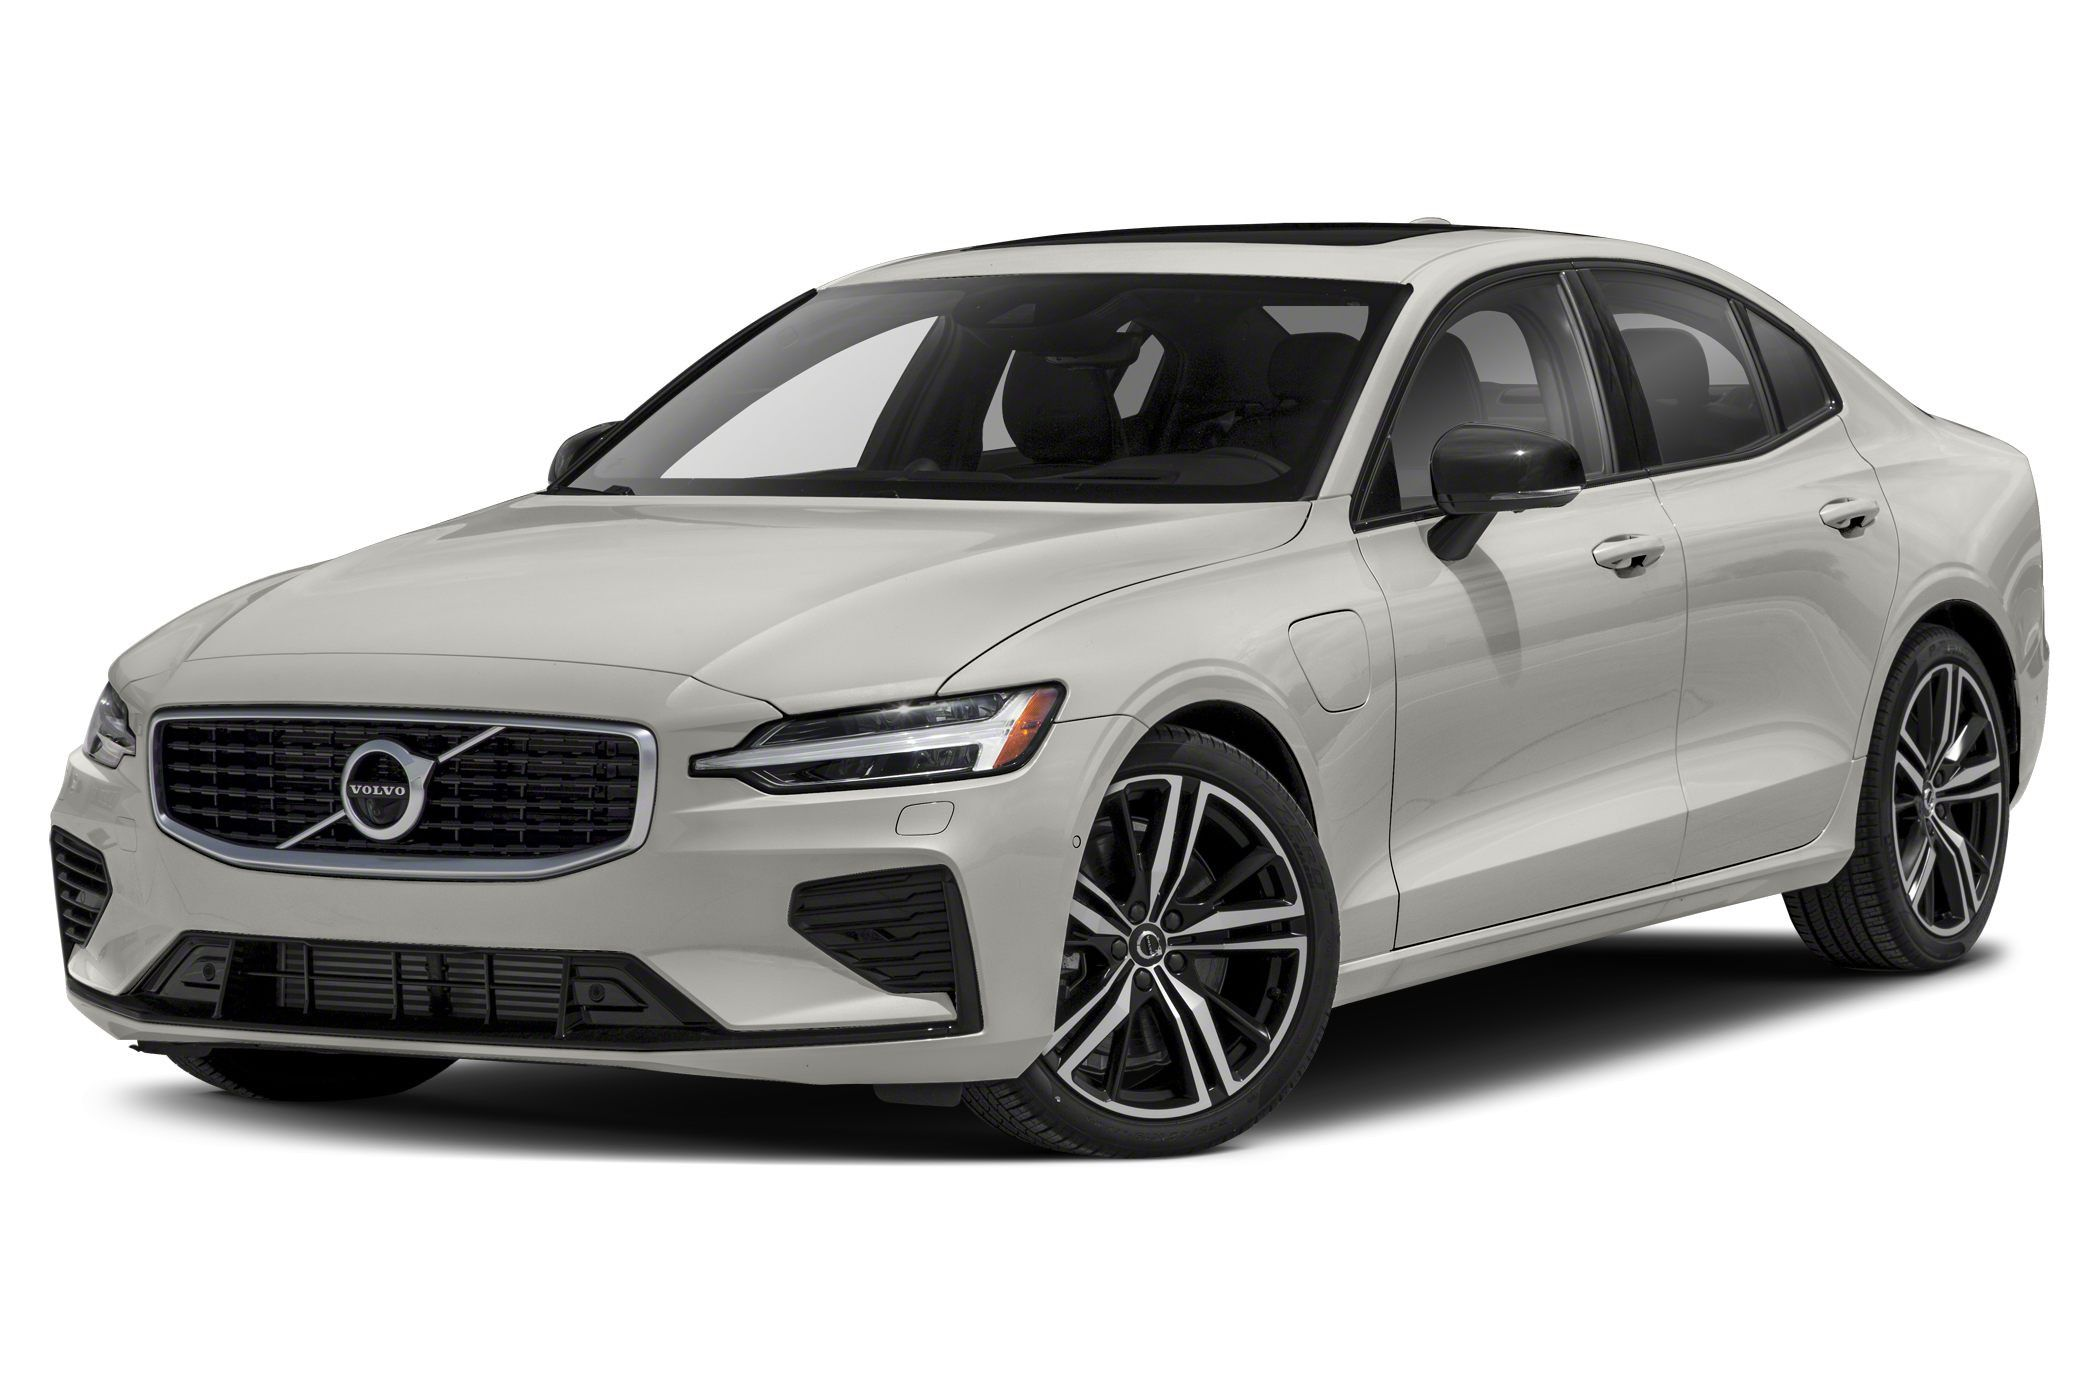 Volvo Xc90 Hybrid 2020 New Interior For Volvo Xc90 Hybrid 2020 Specs And Review Di 2020